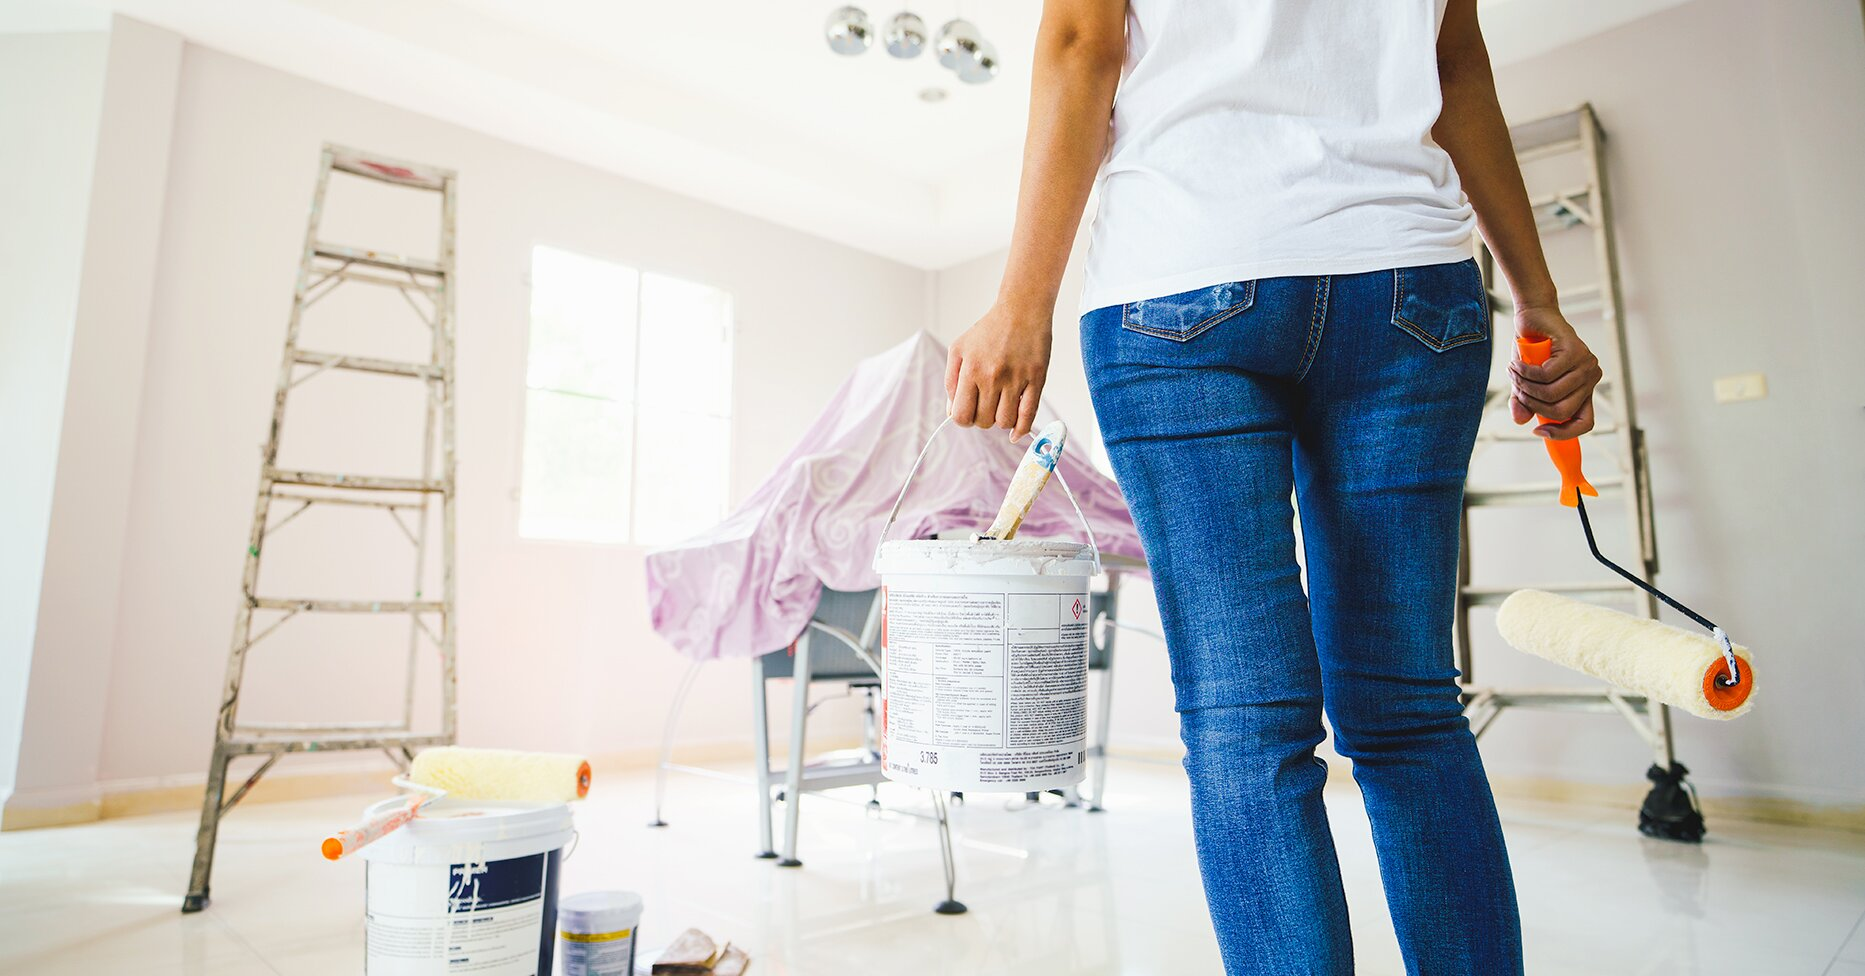 Spray Painting or Roll Painting Your Walls: Which Is the Best Method?